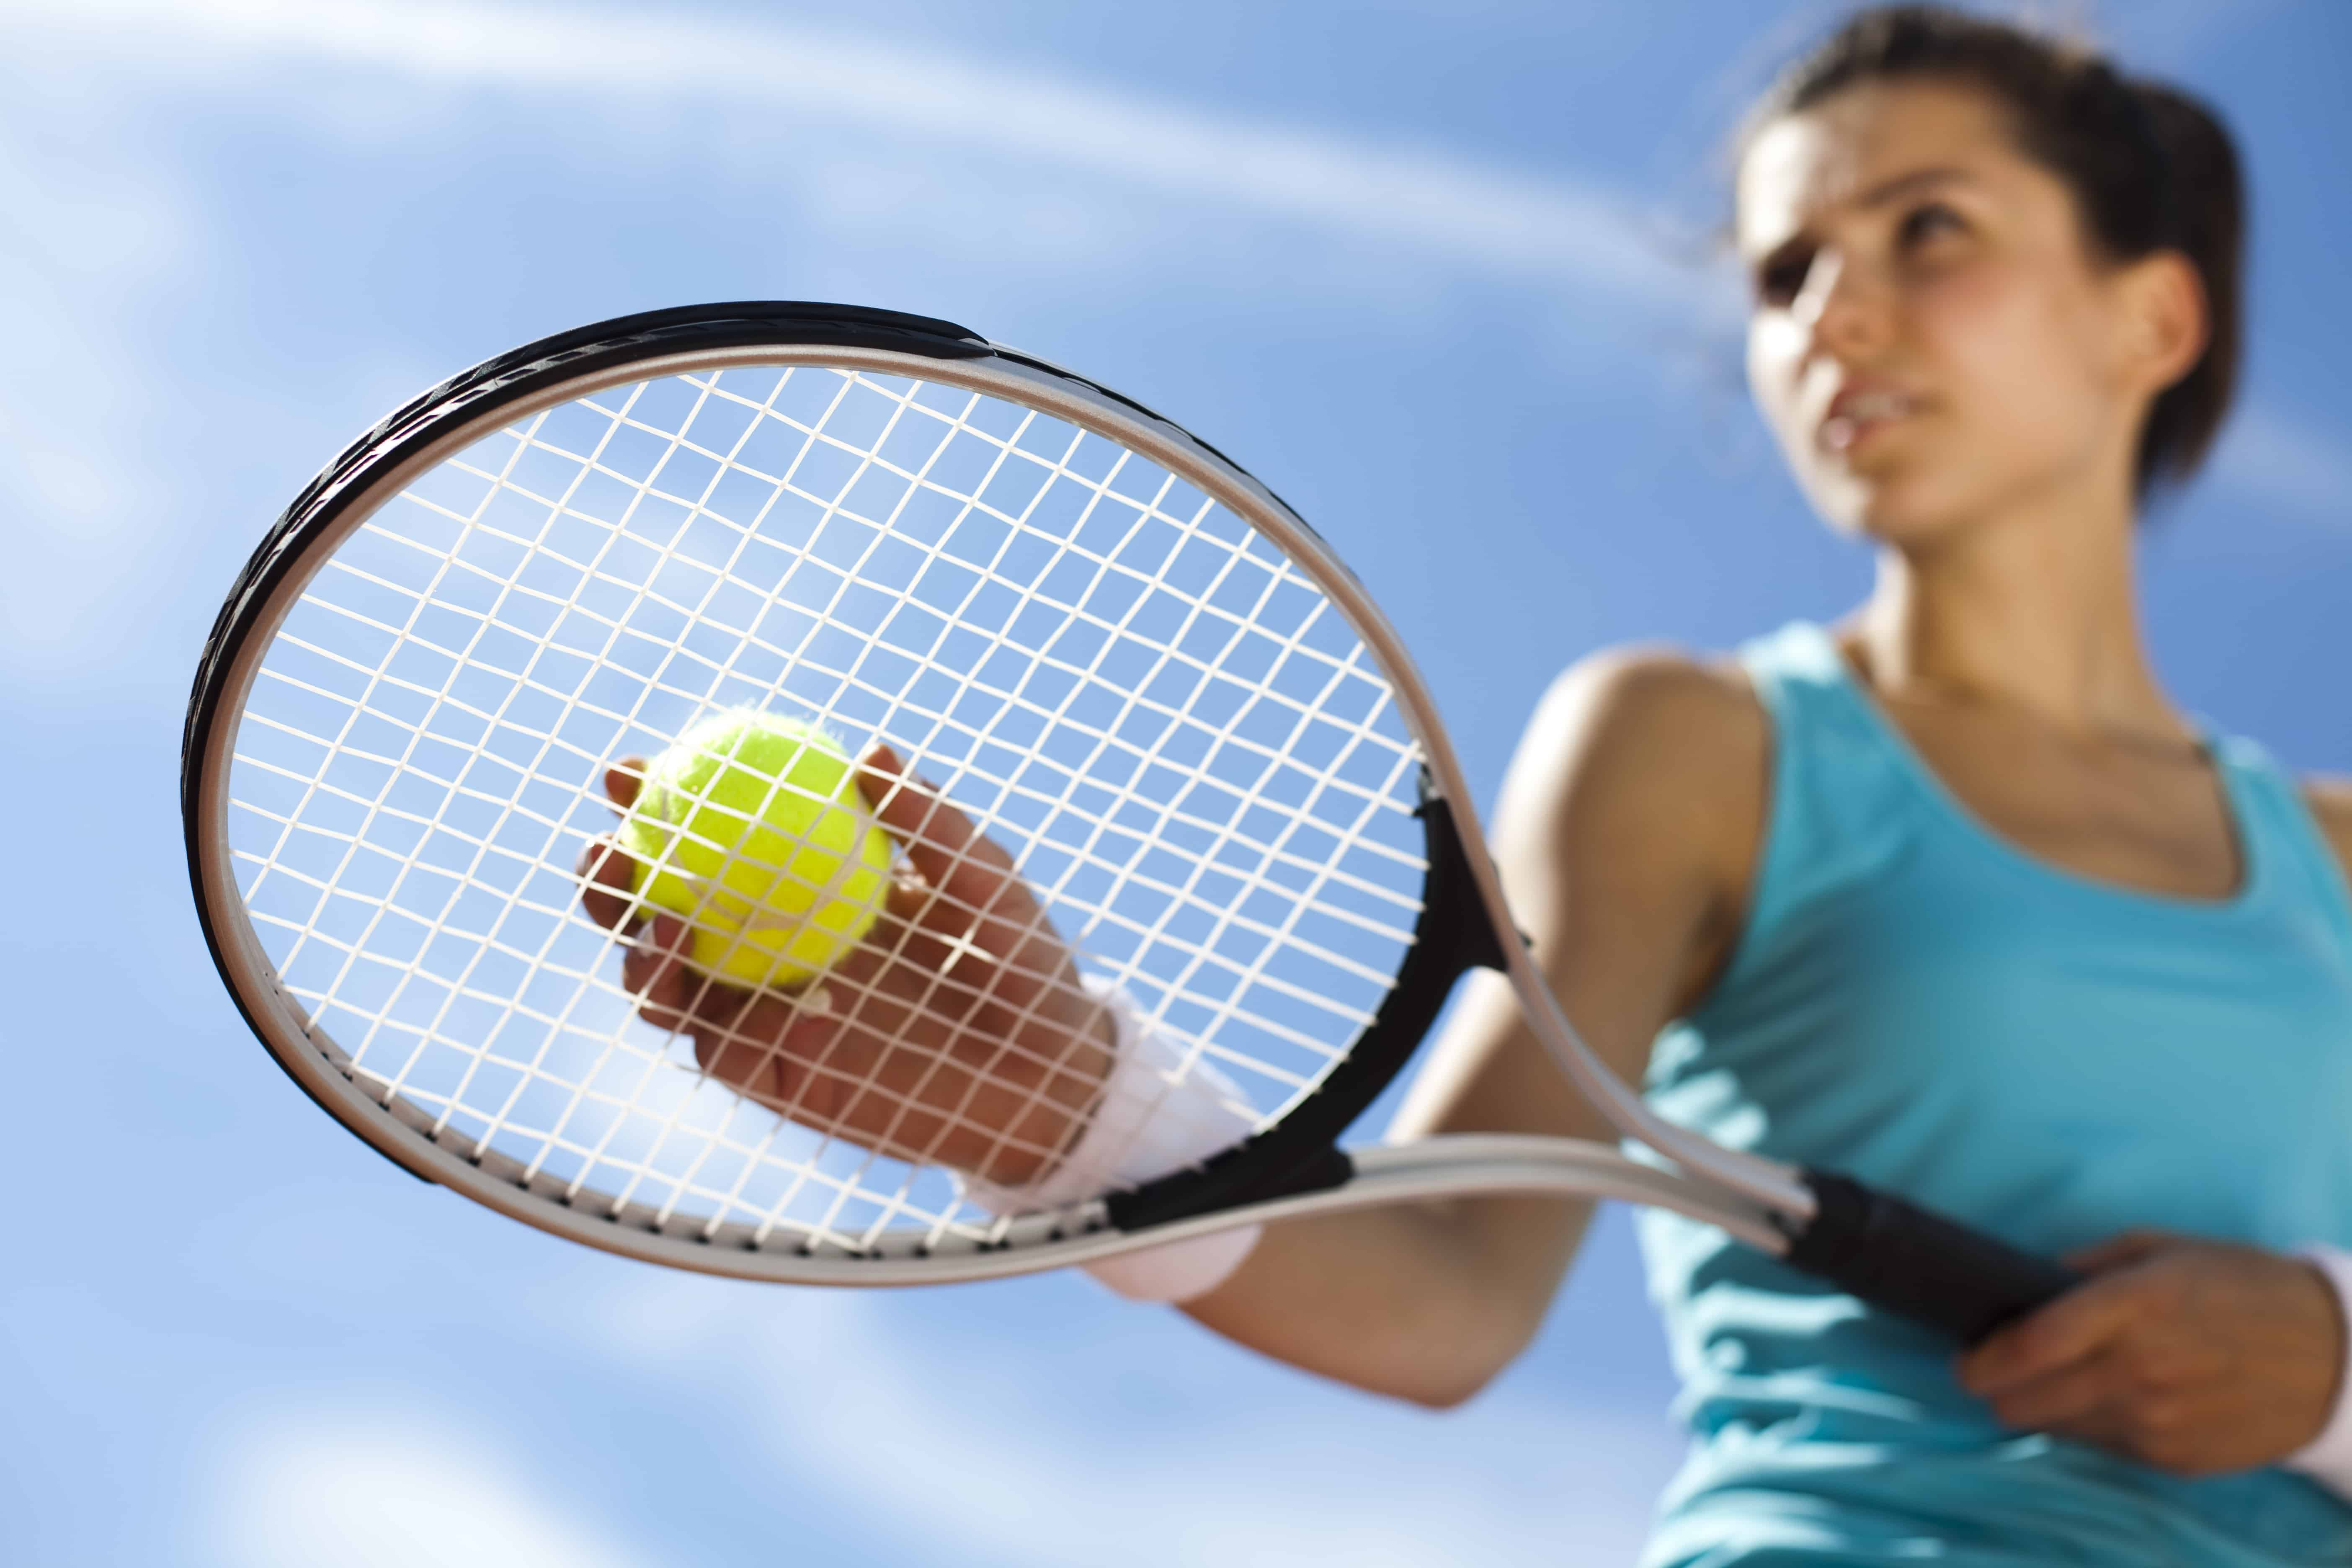 20 Quick Tennis Tips You Need To Win Your Next Match The Tennis Mom